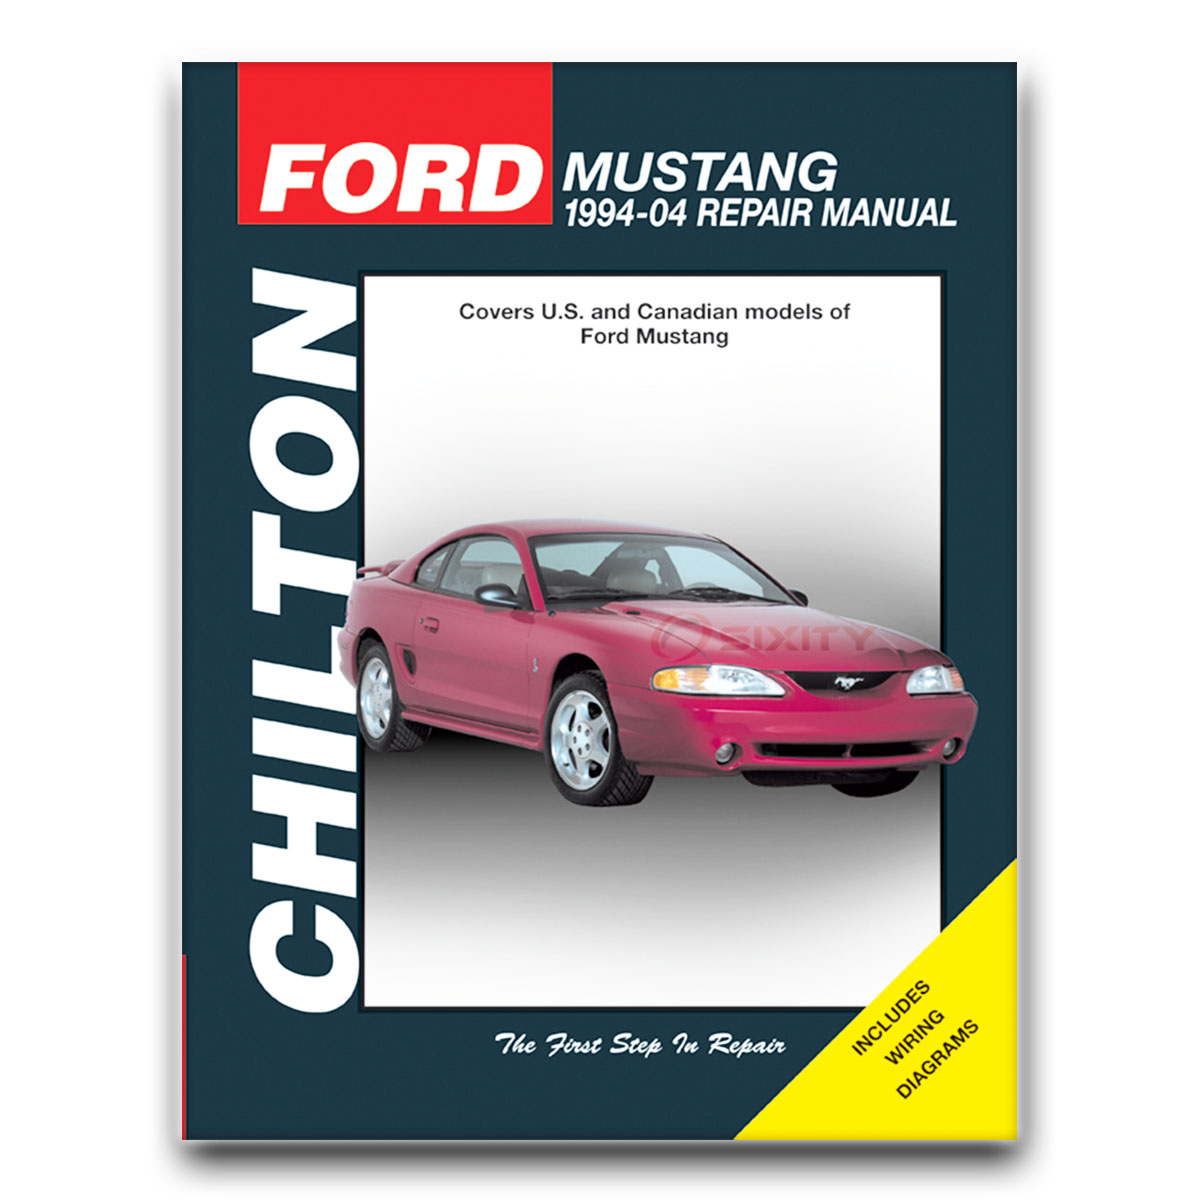 Chilton Repair Manual 26608 for Ford Mustang 1994-04 Shop Service Garage  Boo vt